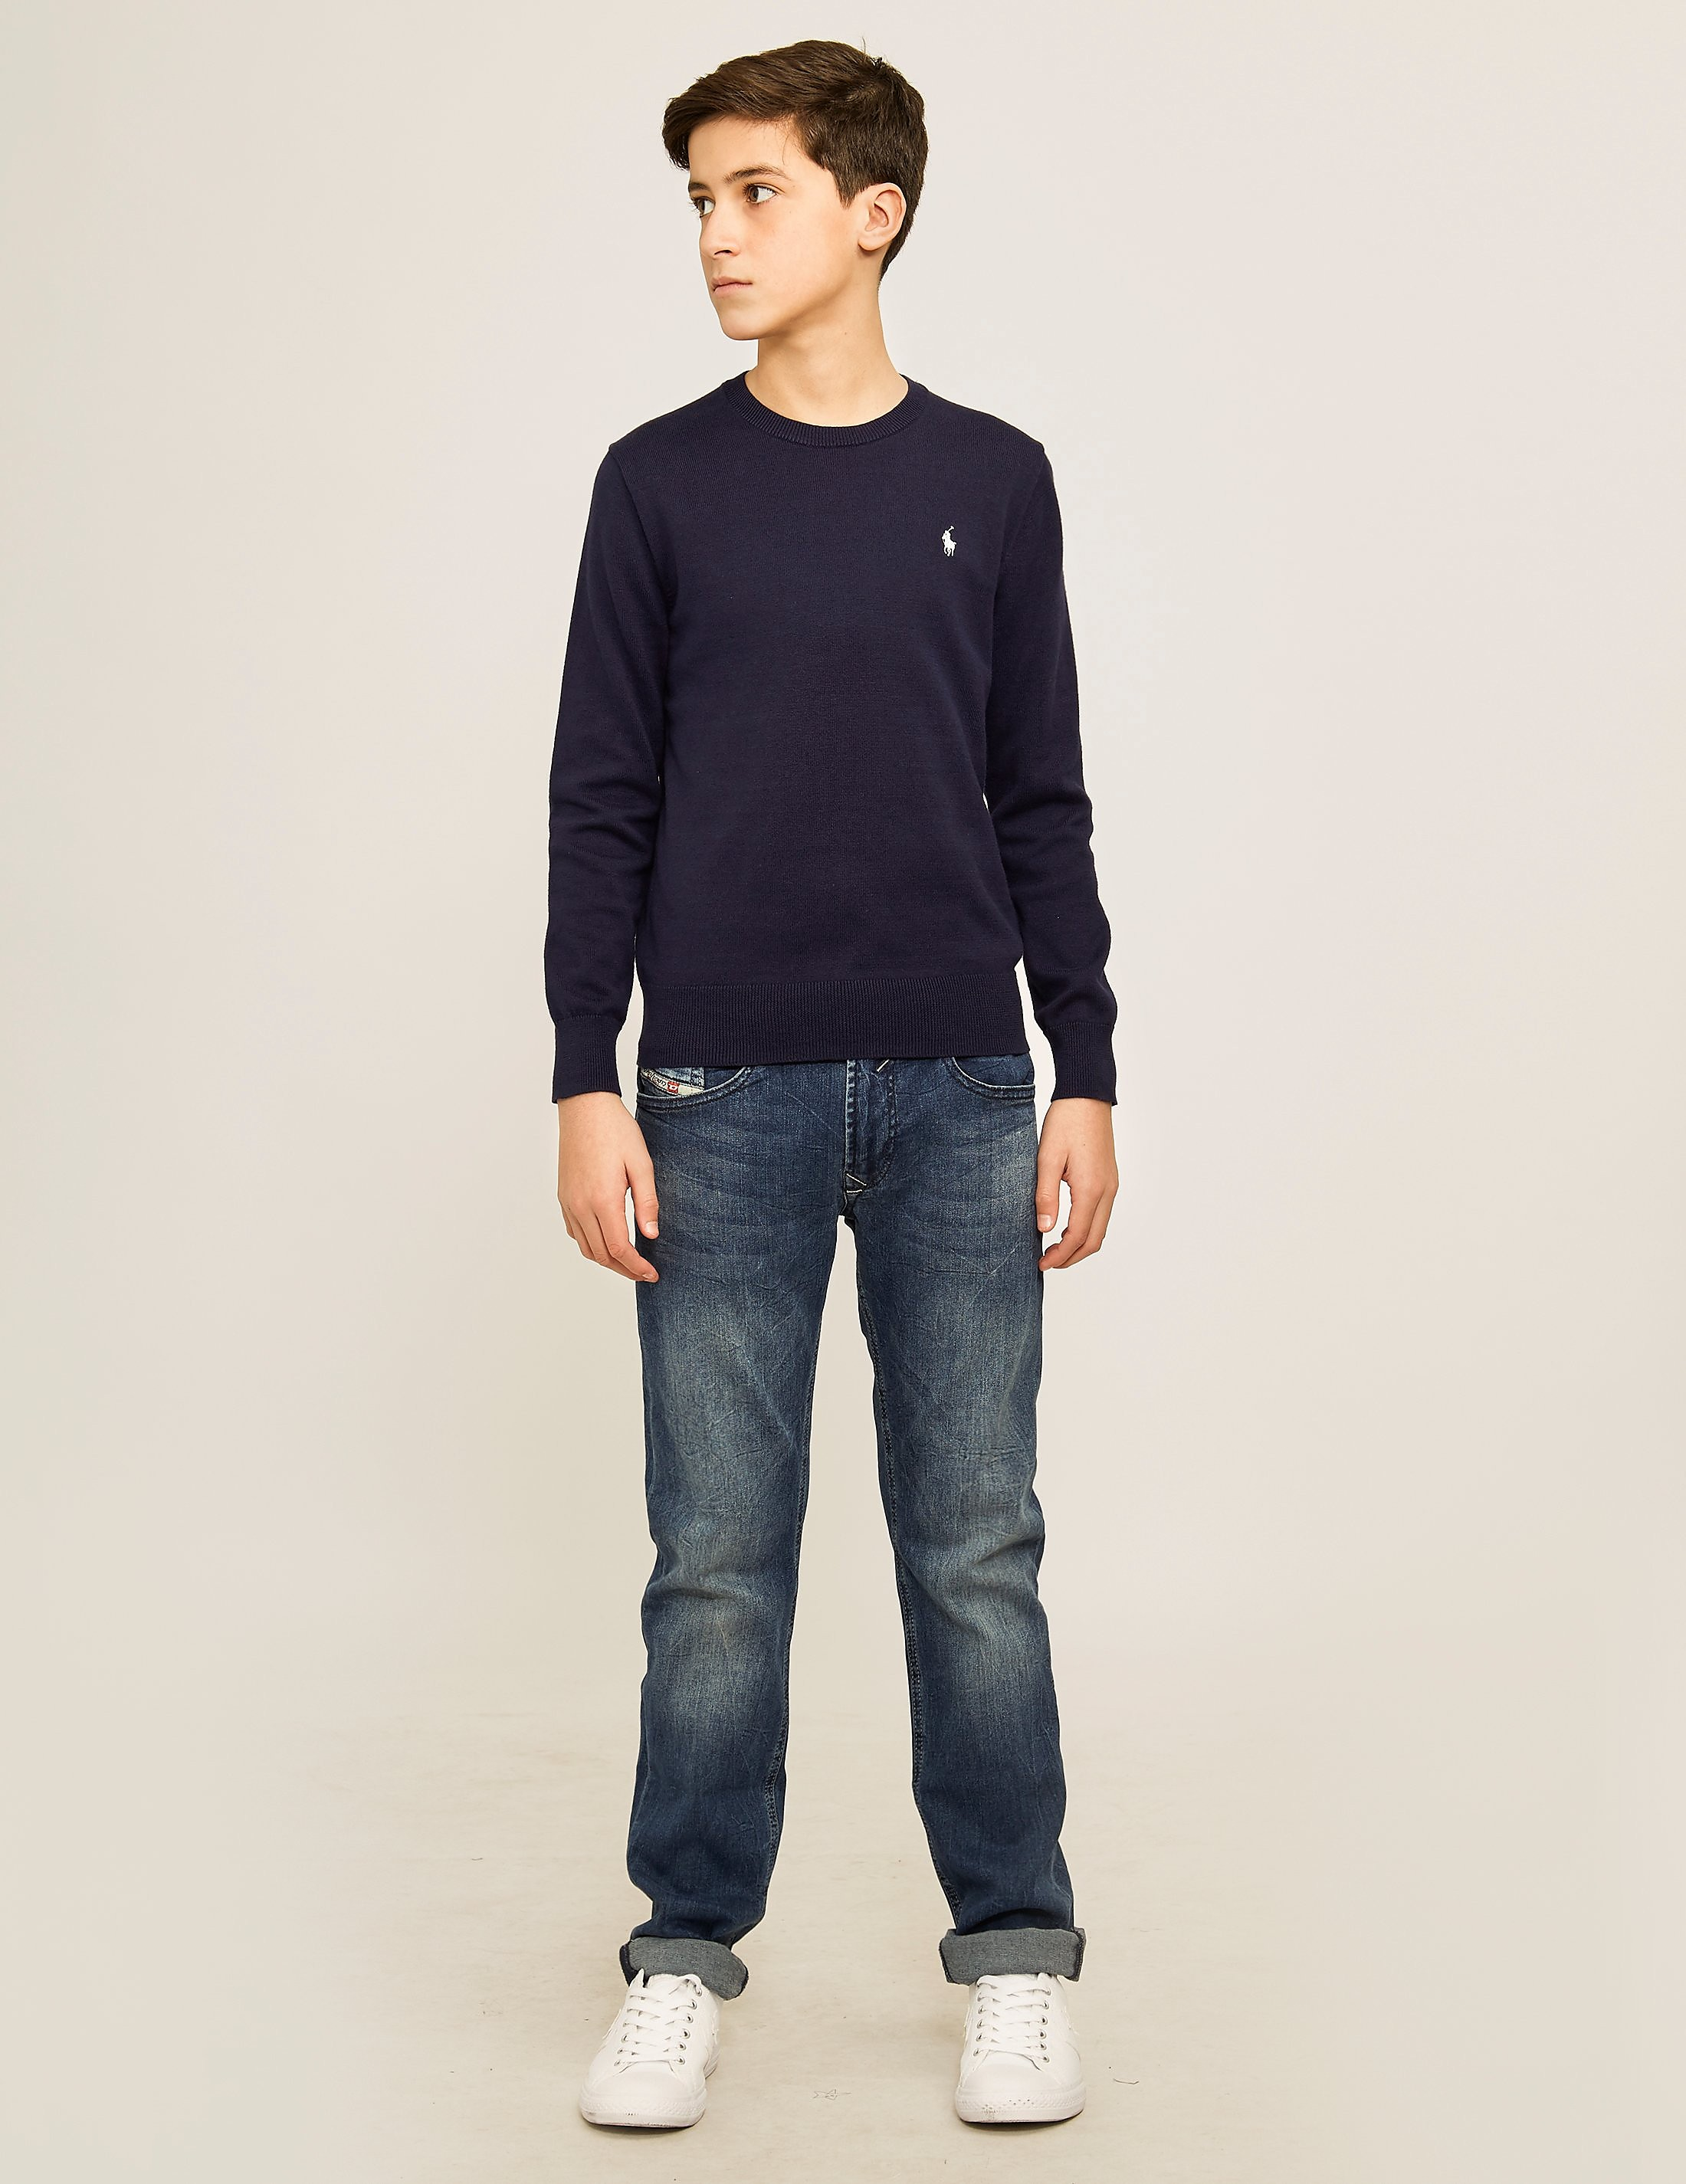 Polo Ralph Lauren Crew Knit